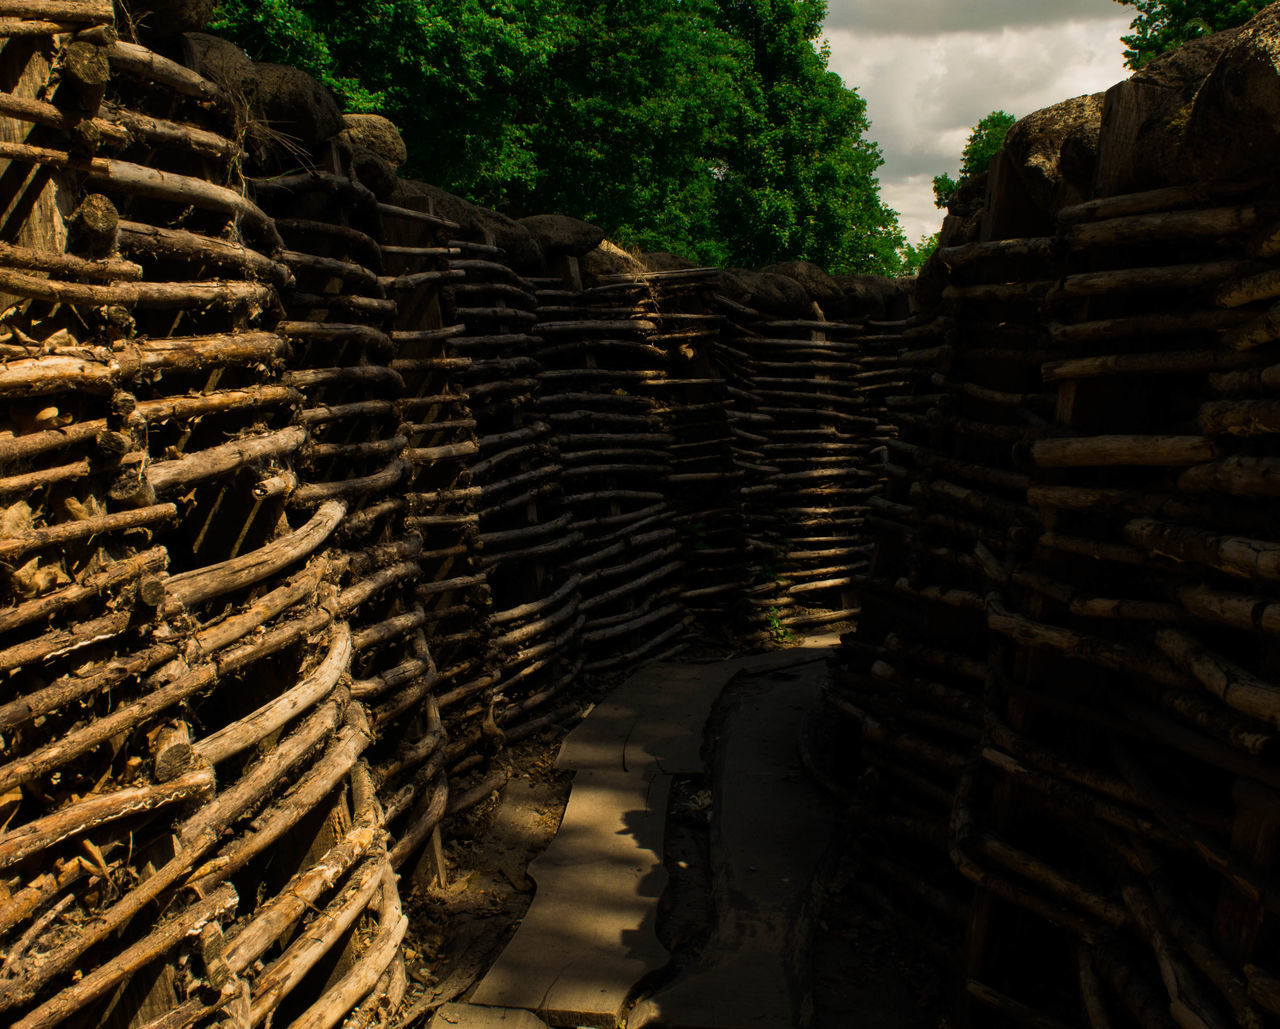 stack, abundance, large group of objects, pile, deforestation, lumber industry, outdoors, nature, day, no people, sky